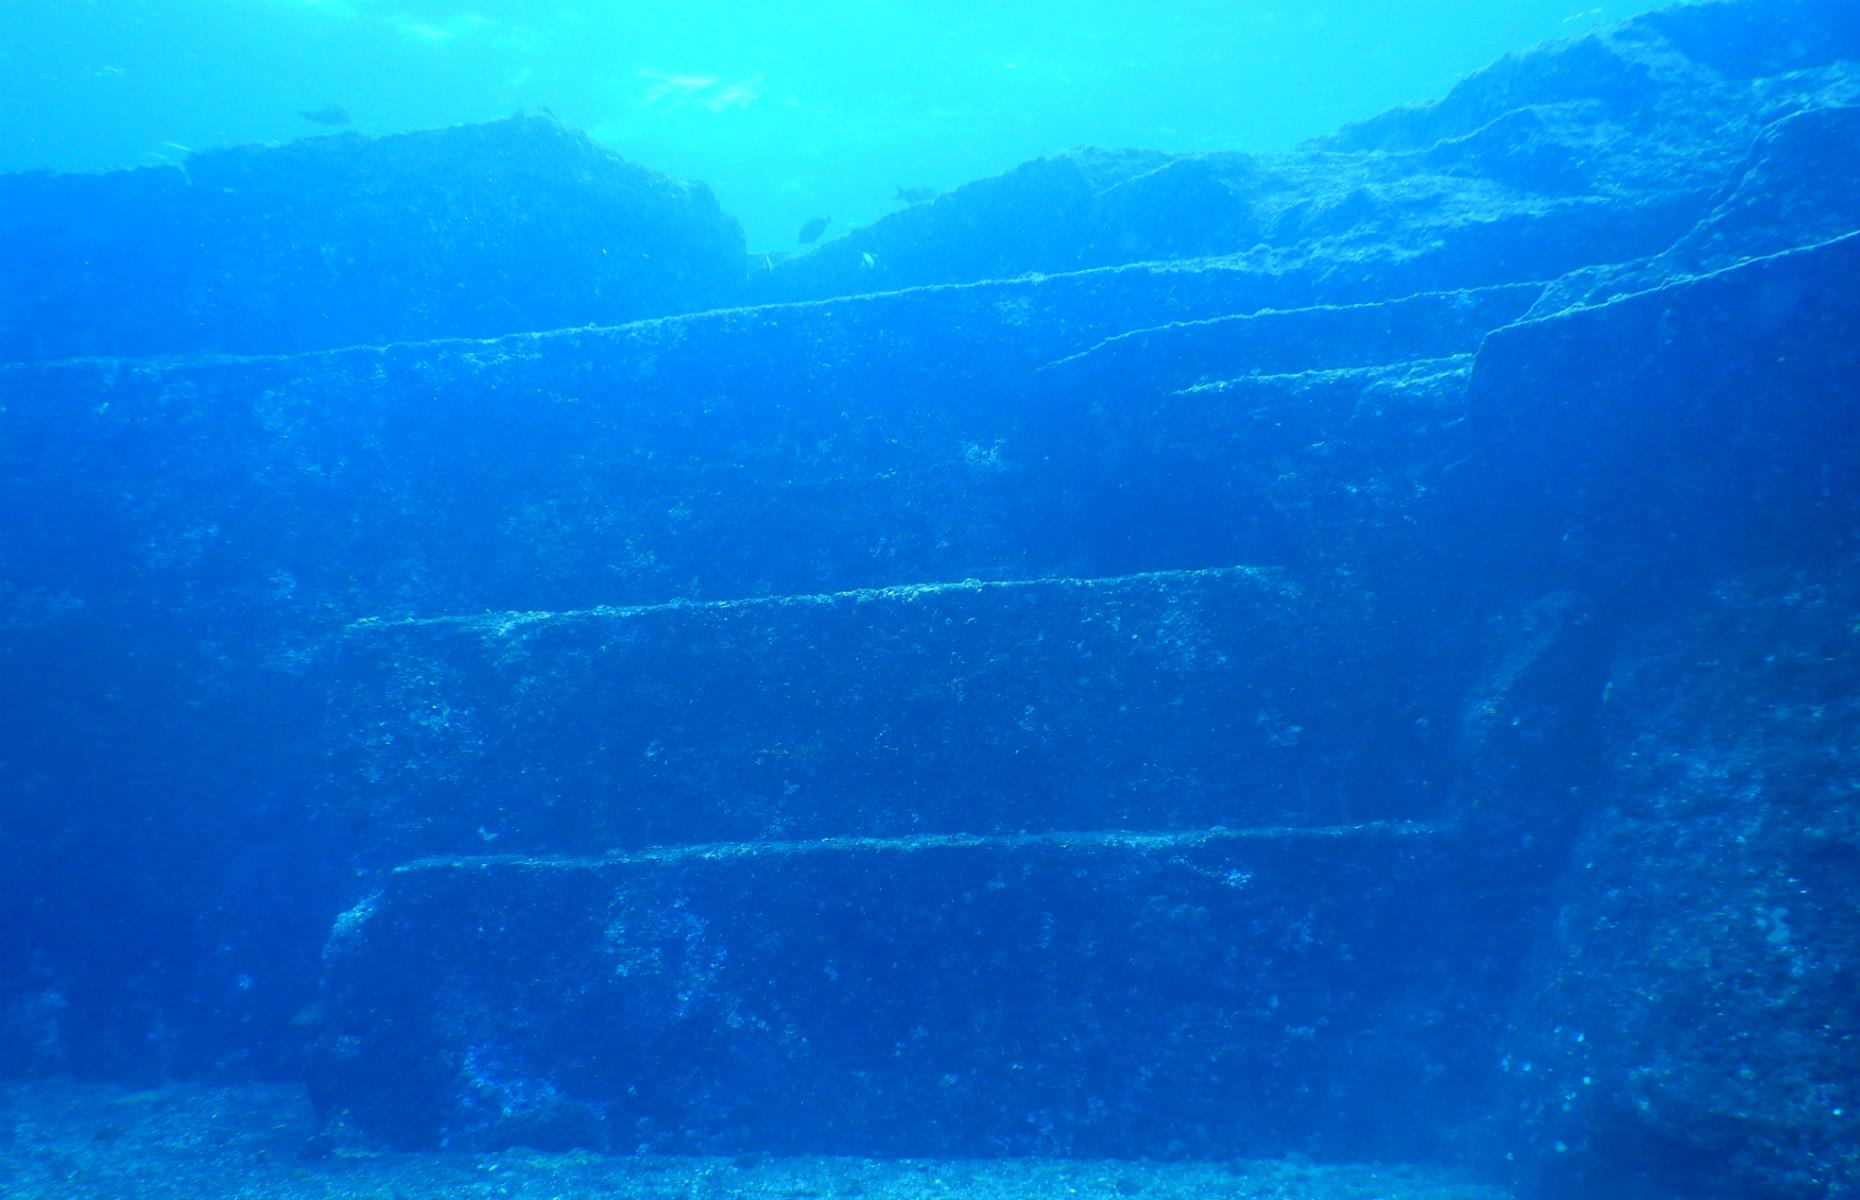 Slide 13 of 25: Between the East China Sea and the Pacific Ocean lies an enigma wrapped in mystery. A series of stone formations, from vertiginous monoliths to stacks of slabs and a pyramid, were spotted close to the remote Japanese island of Yonaguni in the mid-1980s by a local diver. Historians and scientists have been puzzling over their origins ever since – and often arguing about it.